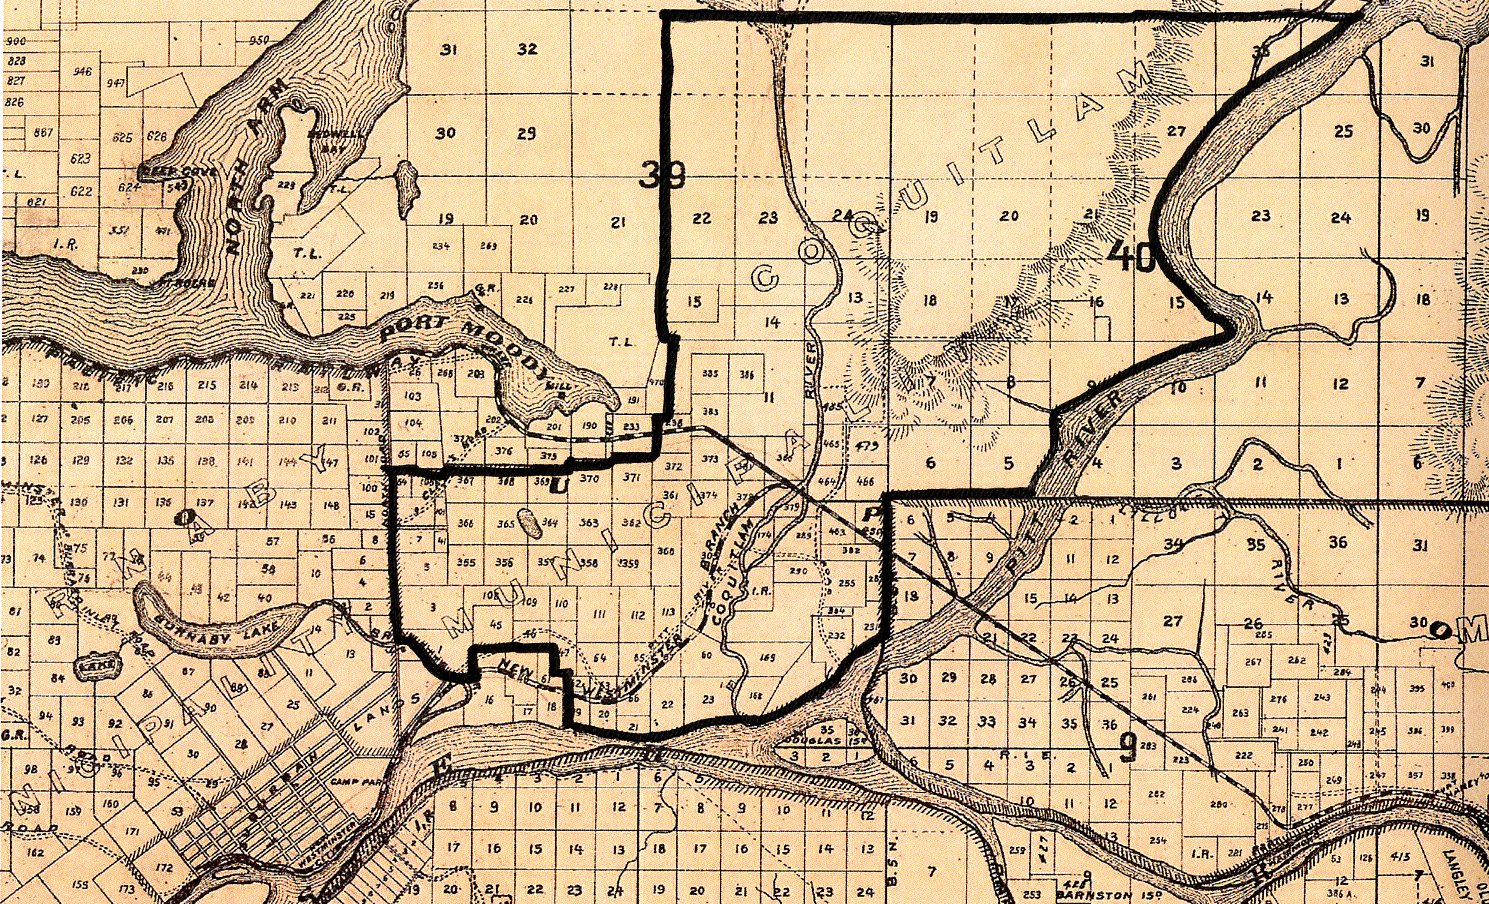 Coquitlam's Original Boundaries Drawn on a Map of New Westminster District from 1892 (JPG) Opens in new window